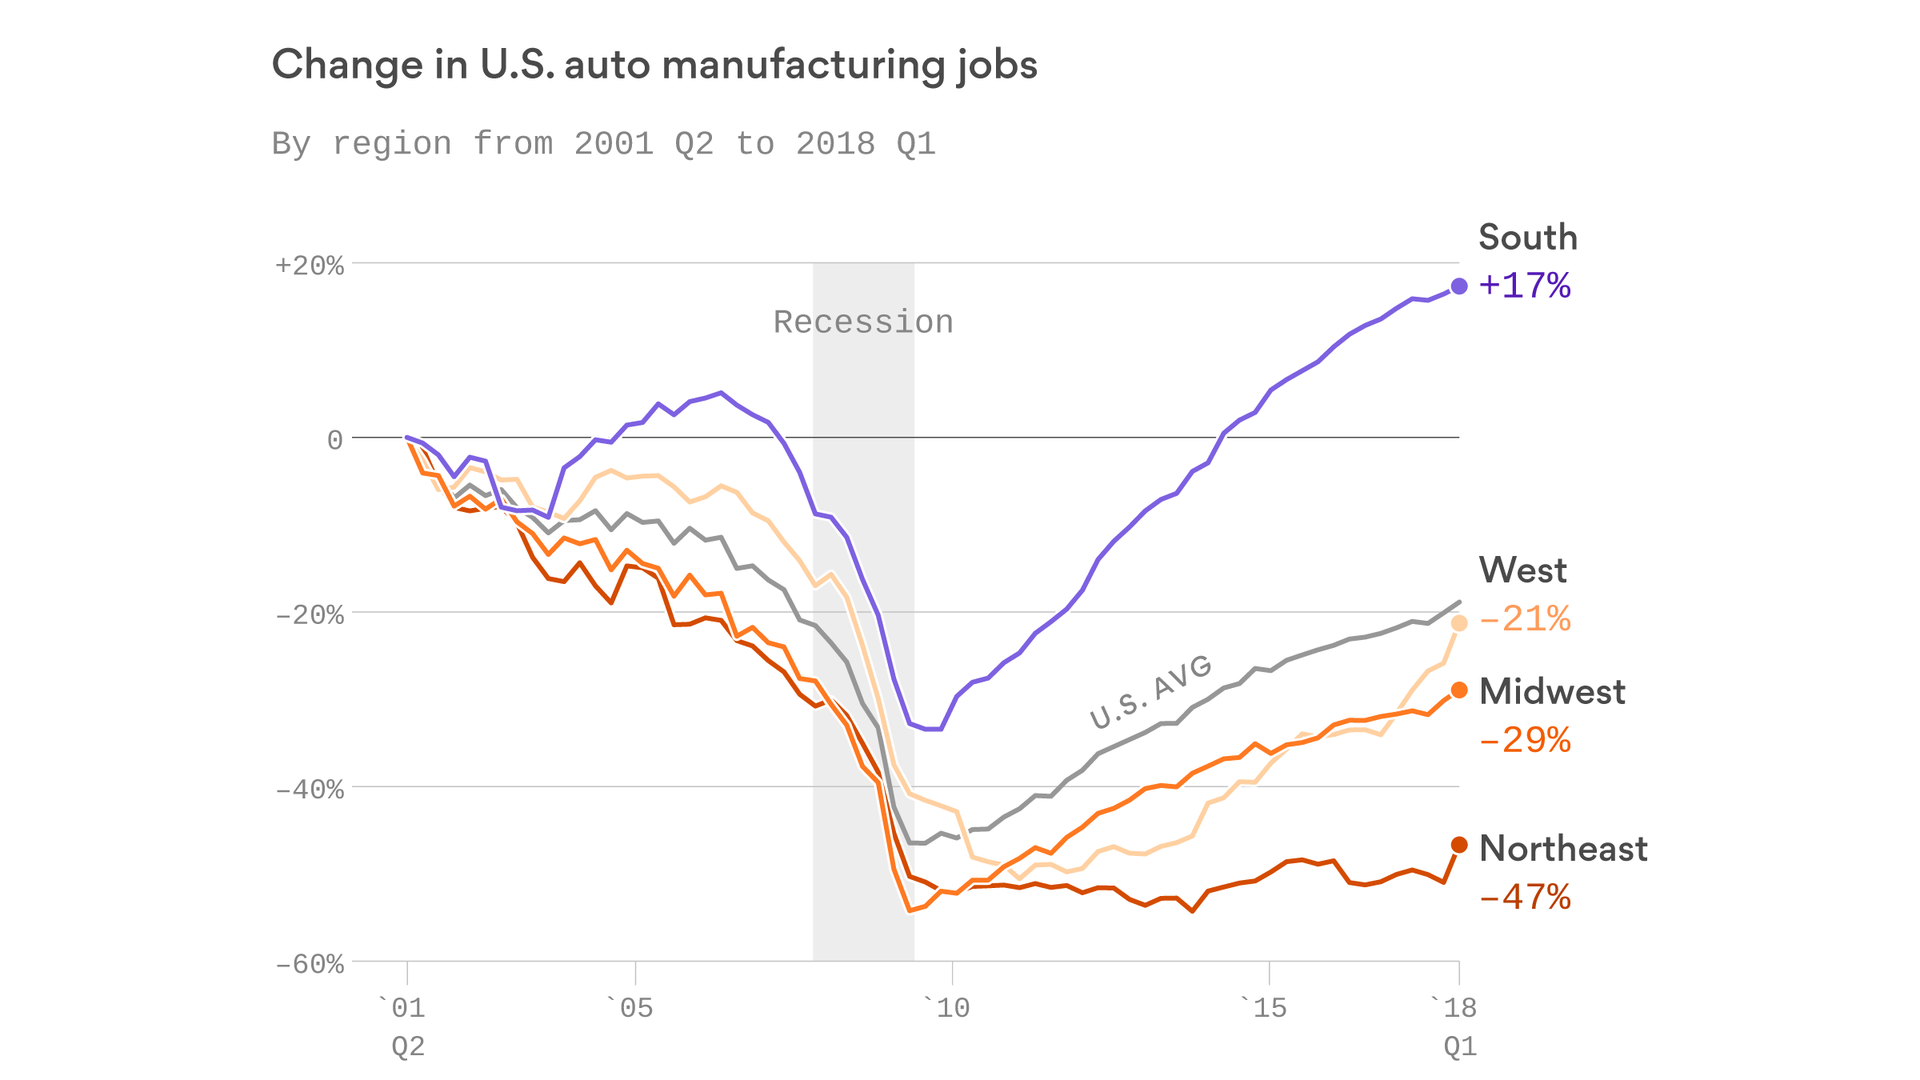 axios.com - Southern states won the most auto manufacturing jobs